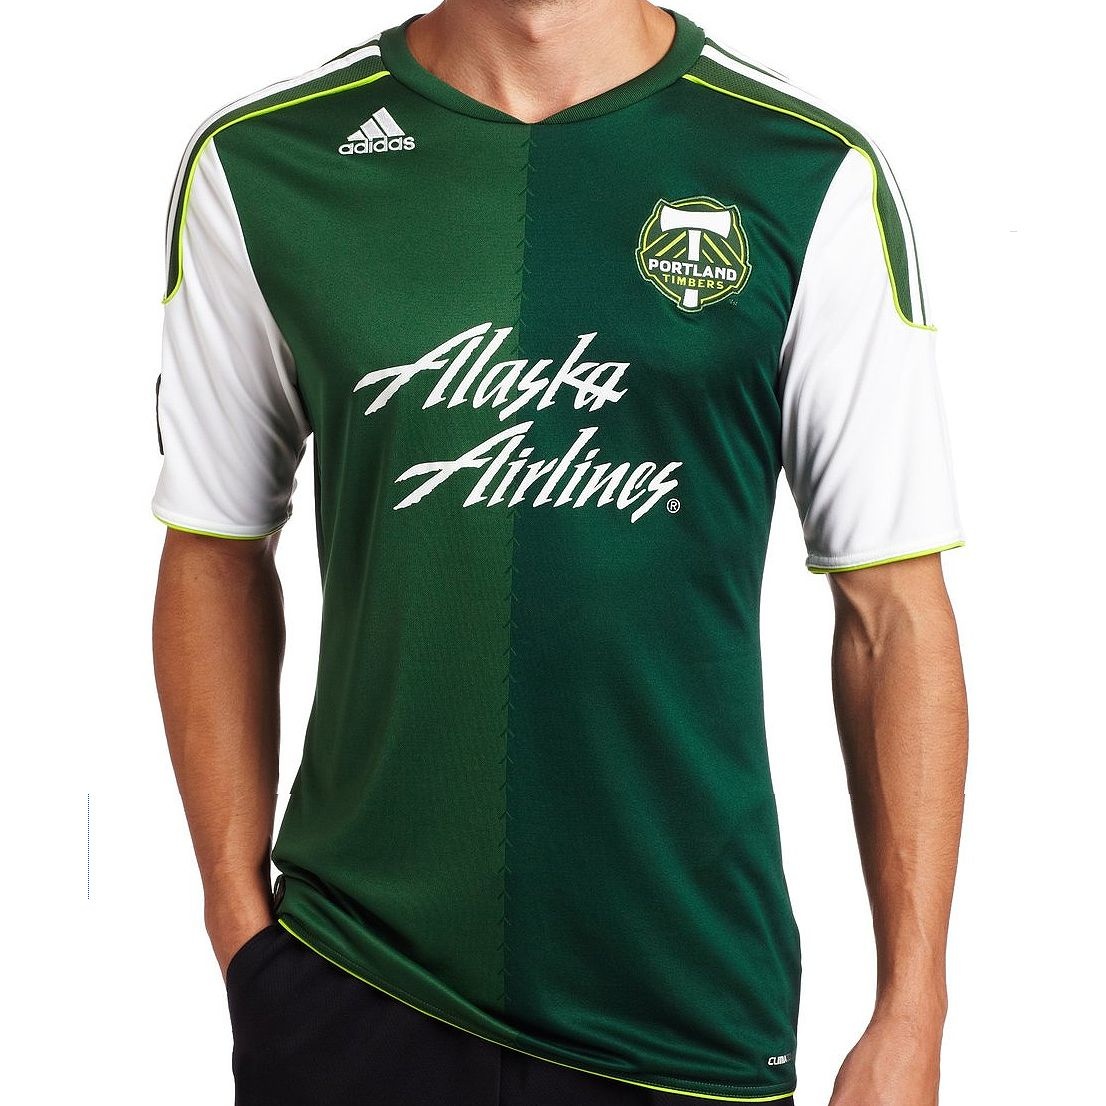 online store 5bad6 aeca3 MLS Portland Timbers Authentic Primary Team Jersey: Adidas ...